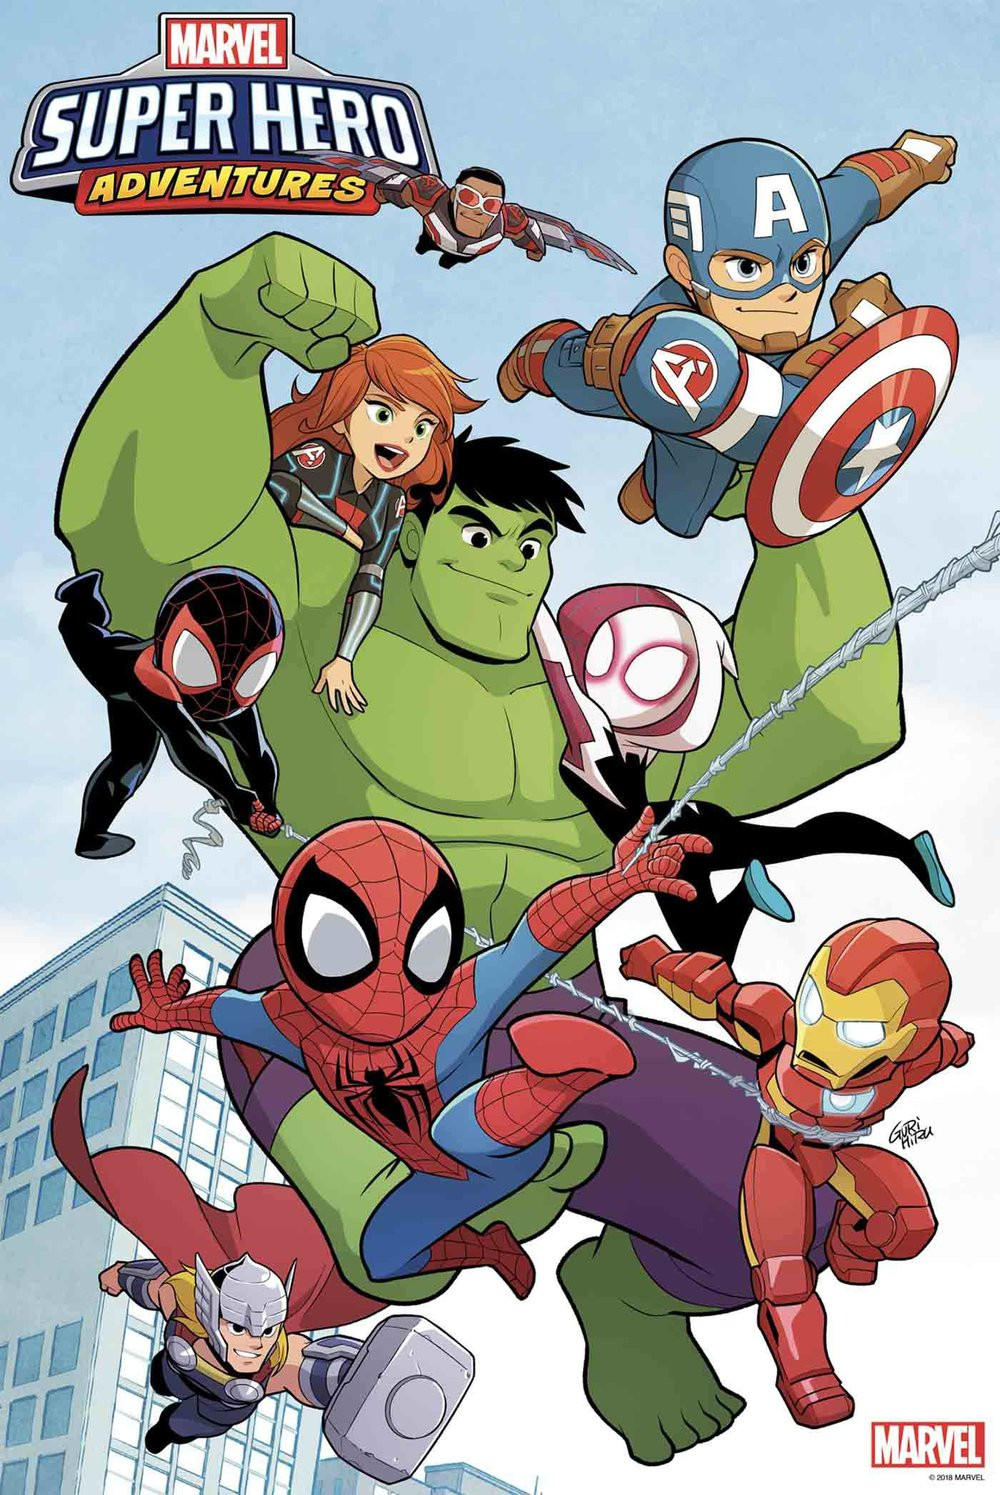 MARVEL SUPER HERO ADVENTURES #1